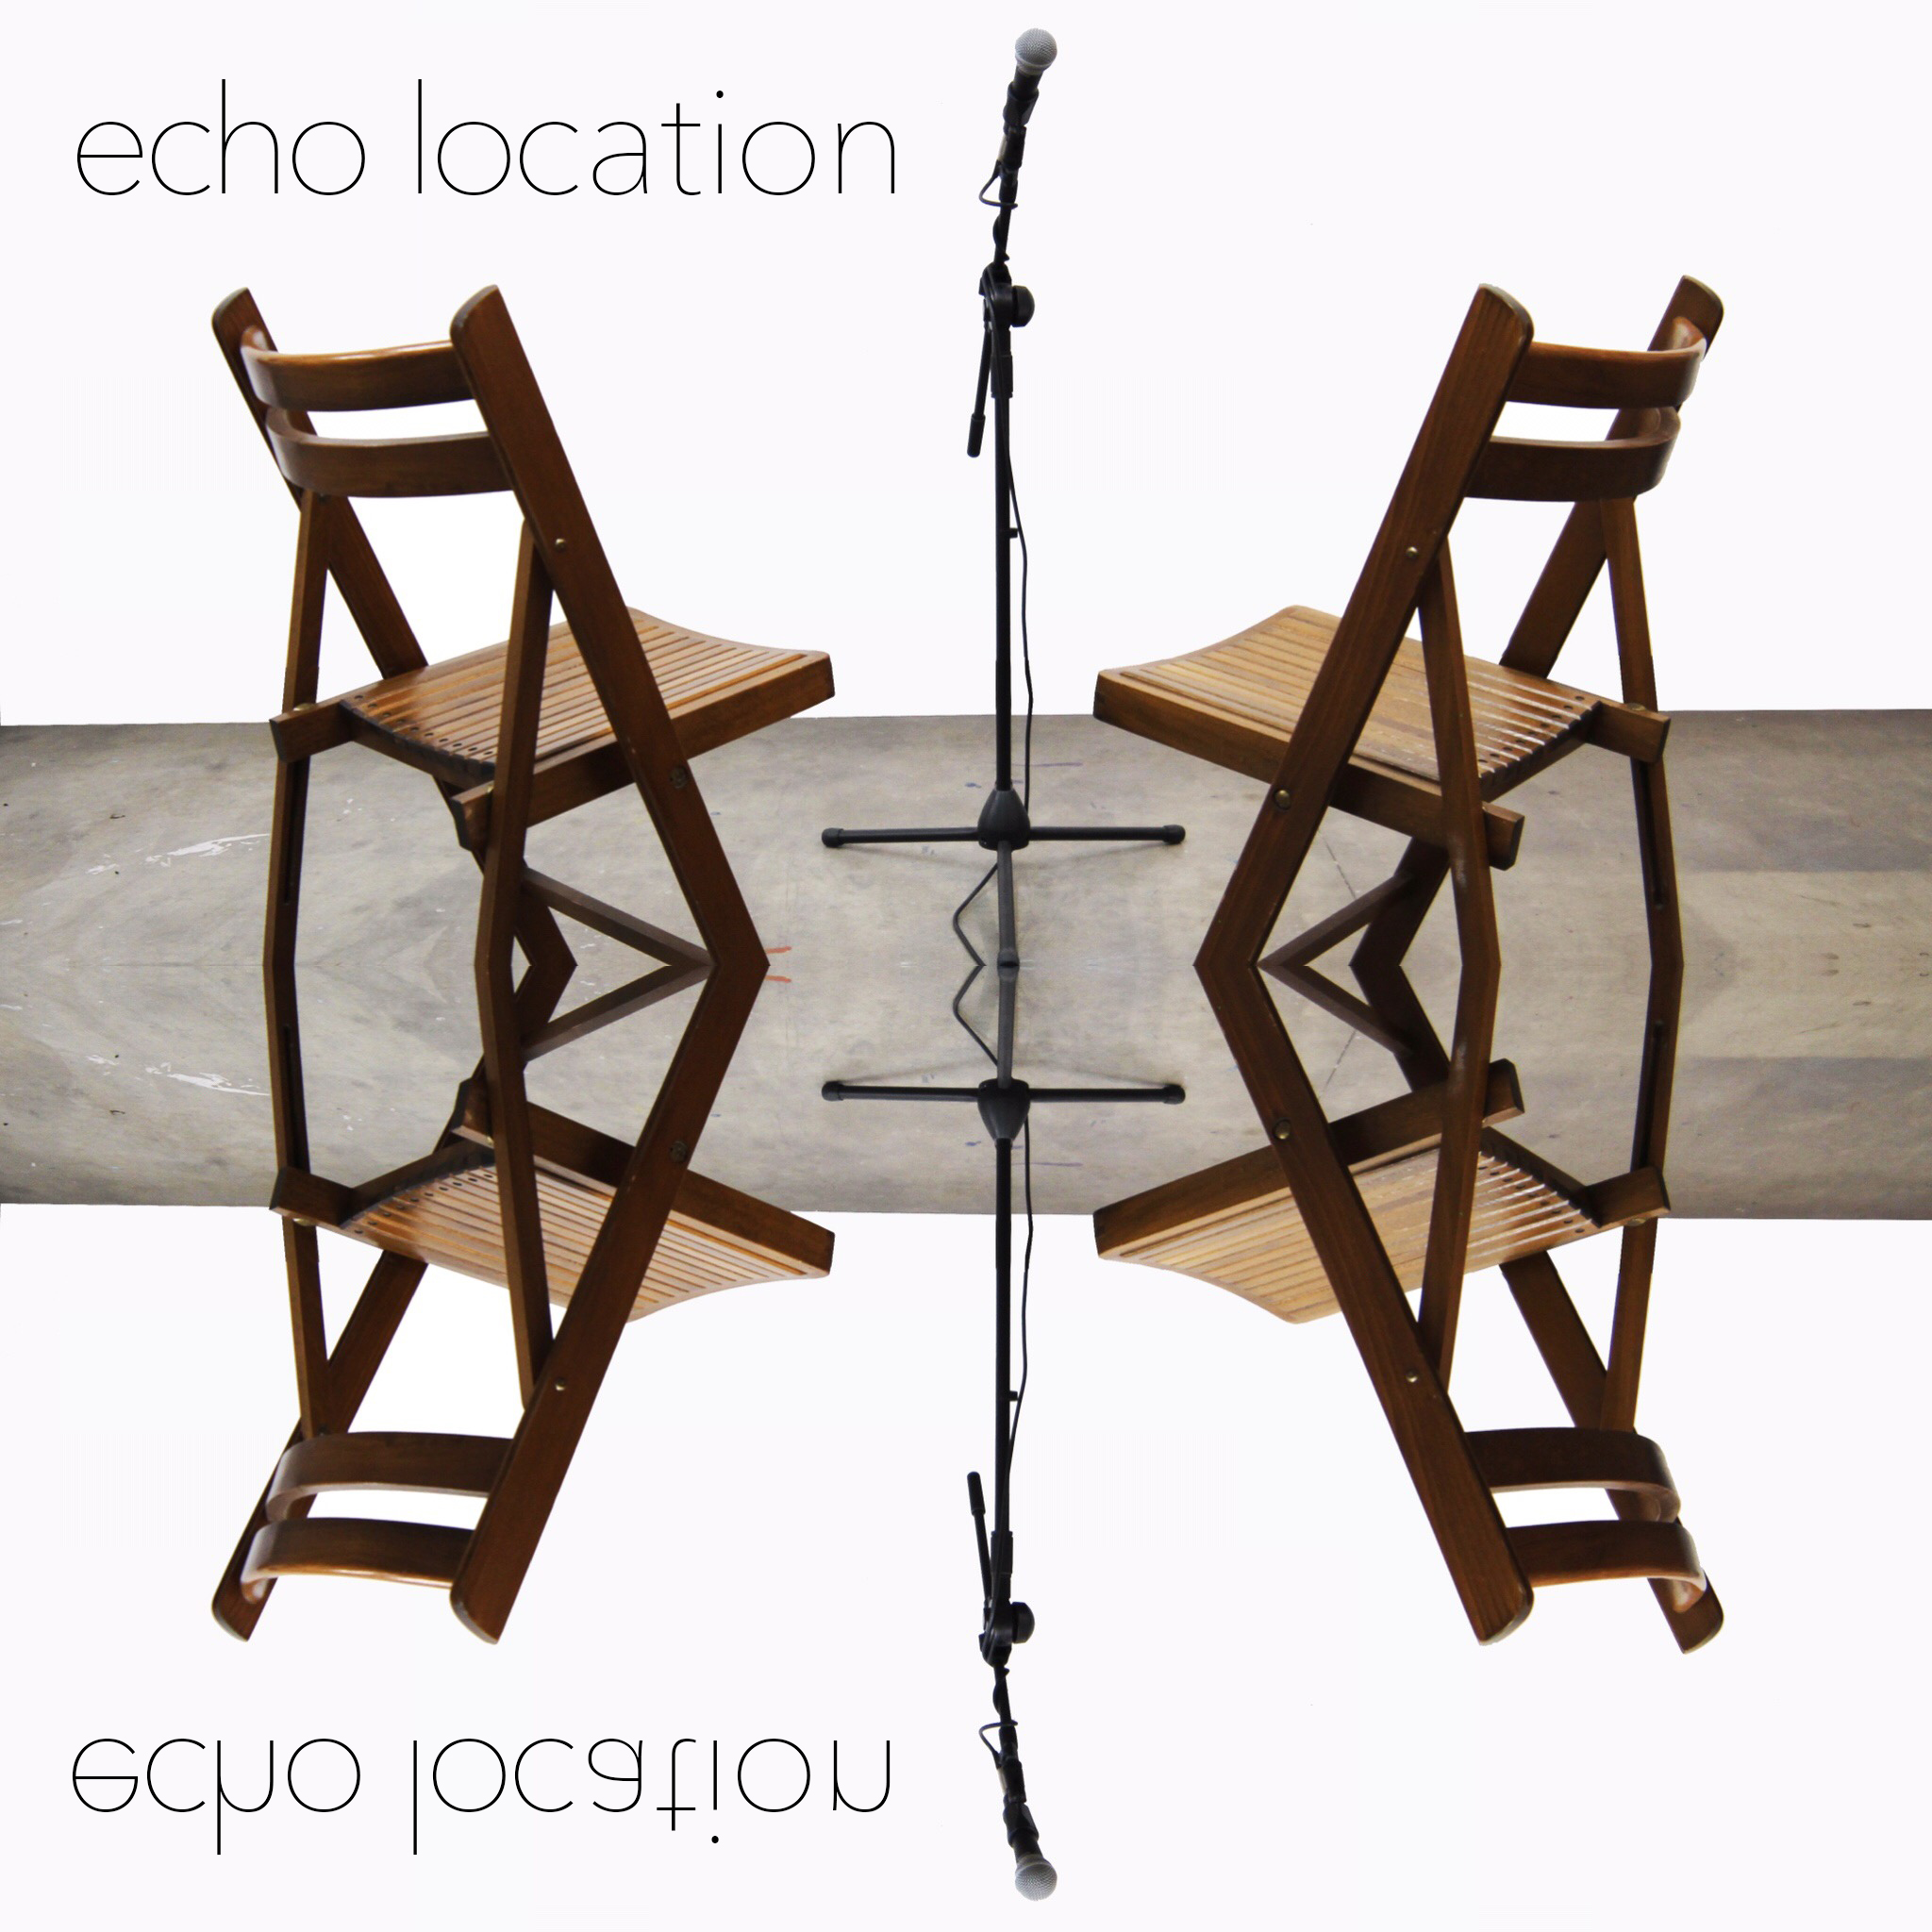 Echo_location_ig